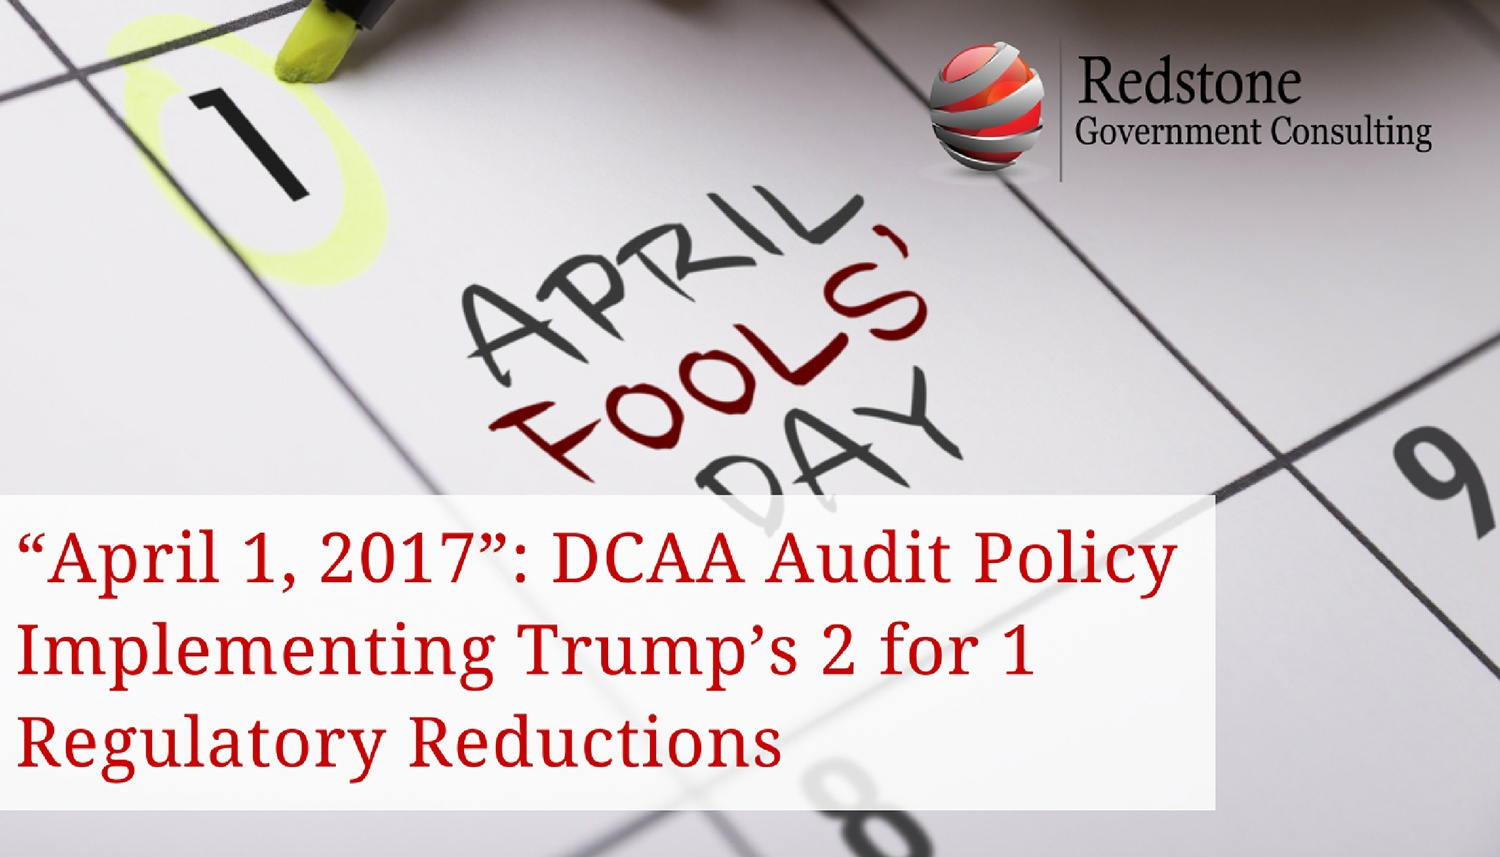 DCAA Audit Policy Implementing Trump's 2 for 1 Regulatory Reductions - Redstone Government Consulting